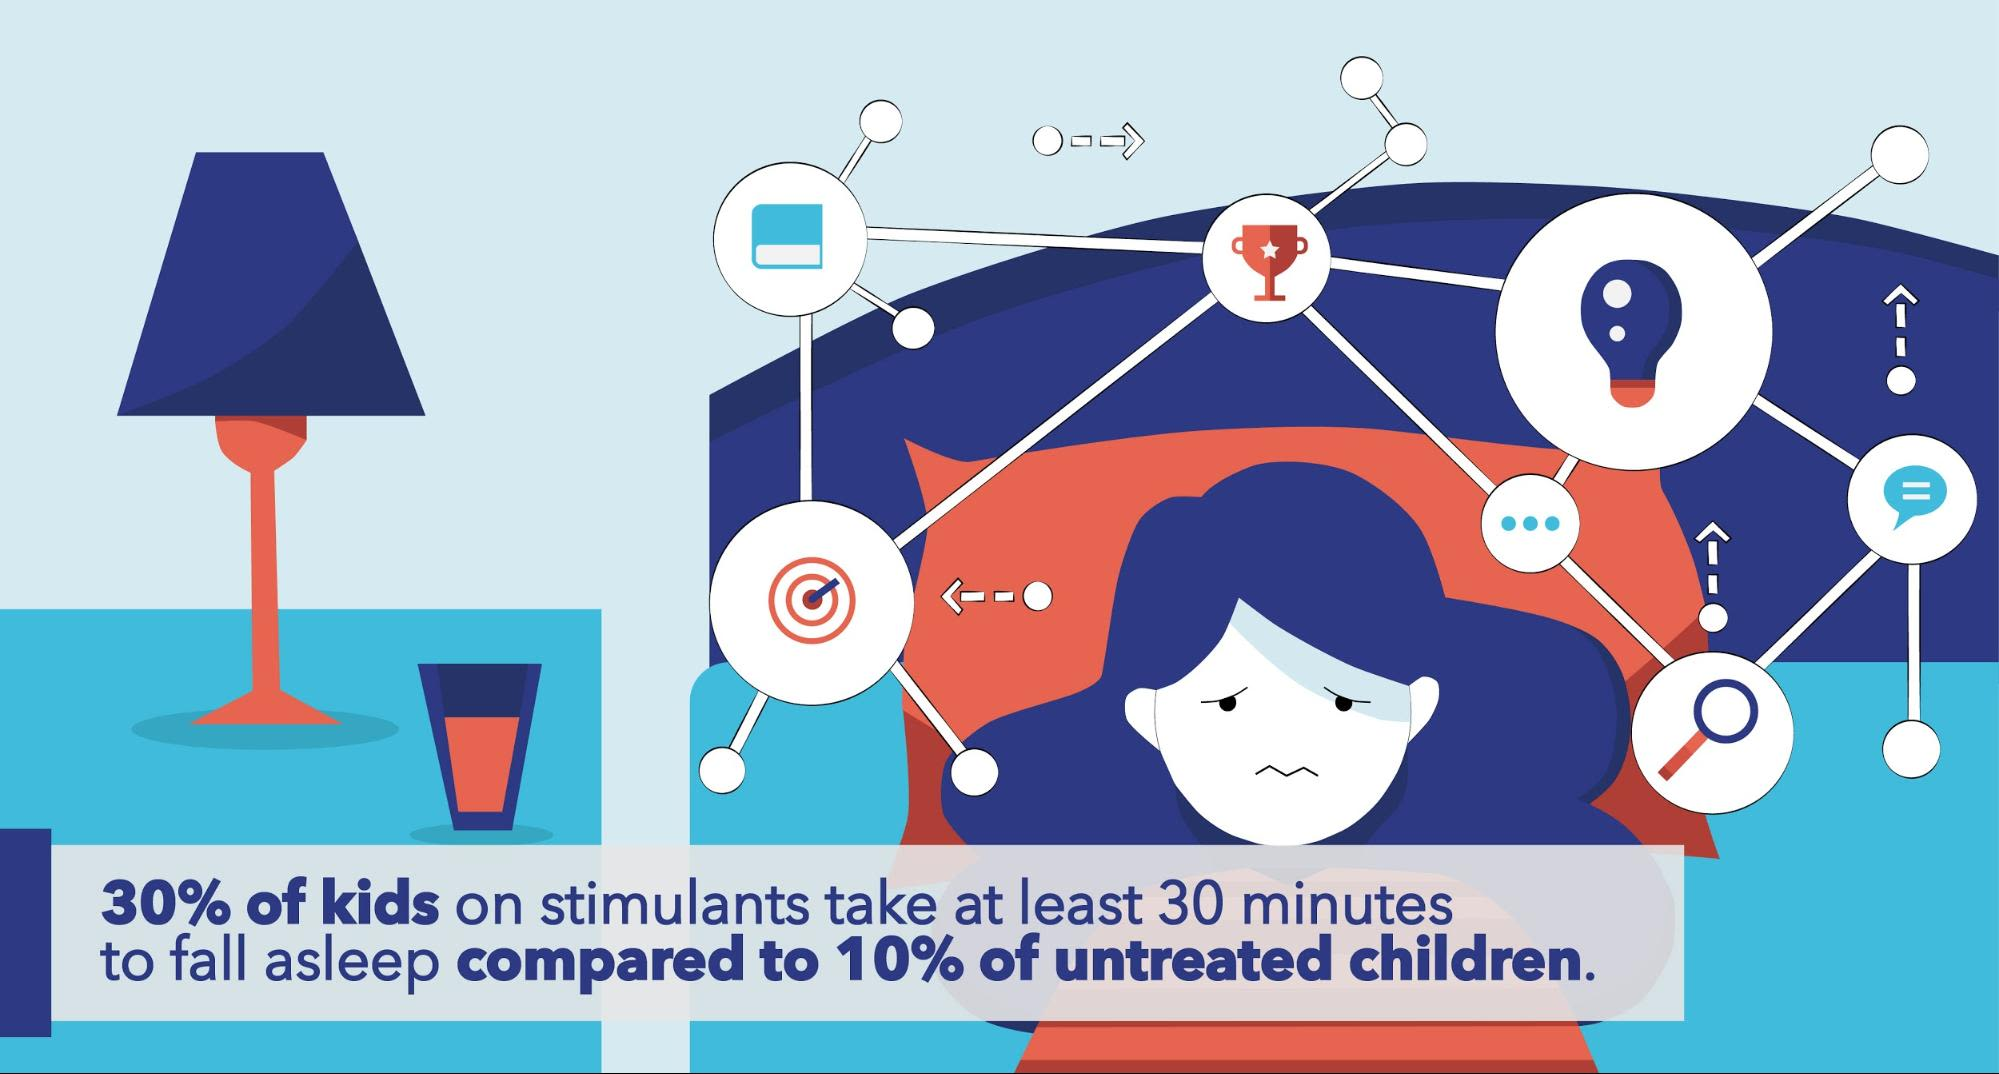 30% of kids on stimulants take at least 30 minutes to fall asleep compared to 10% of untreated children